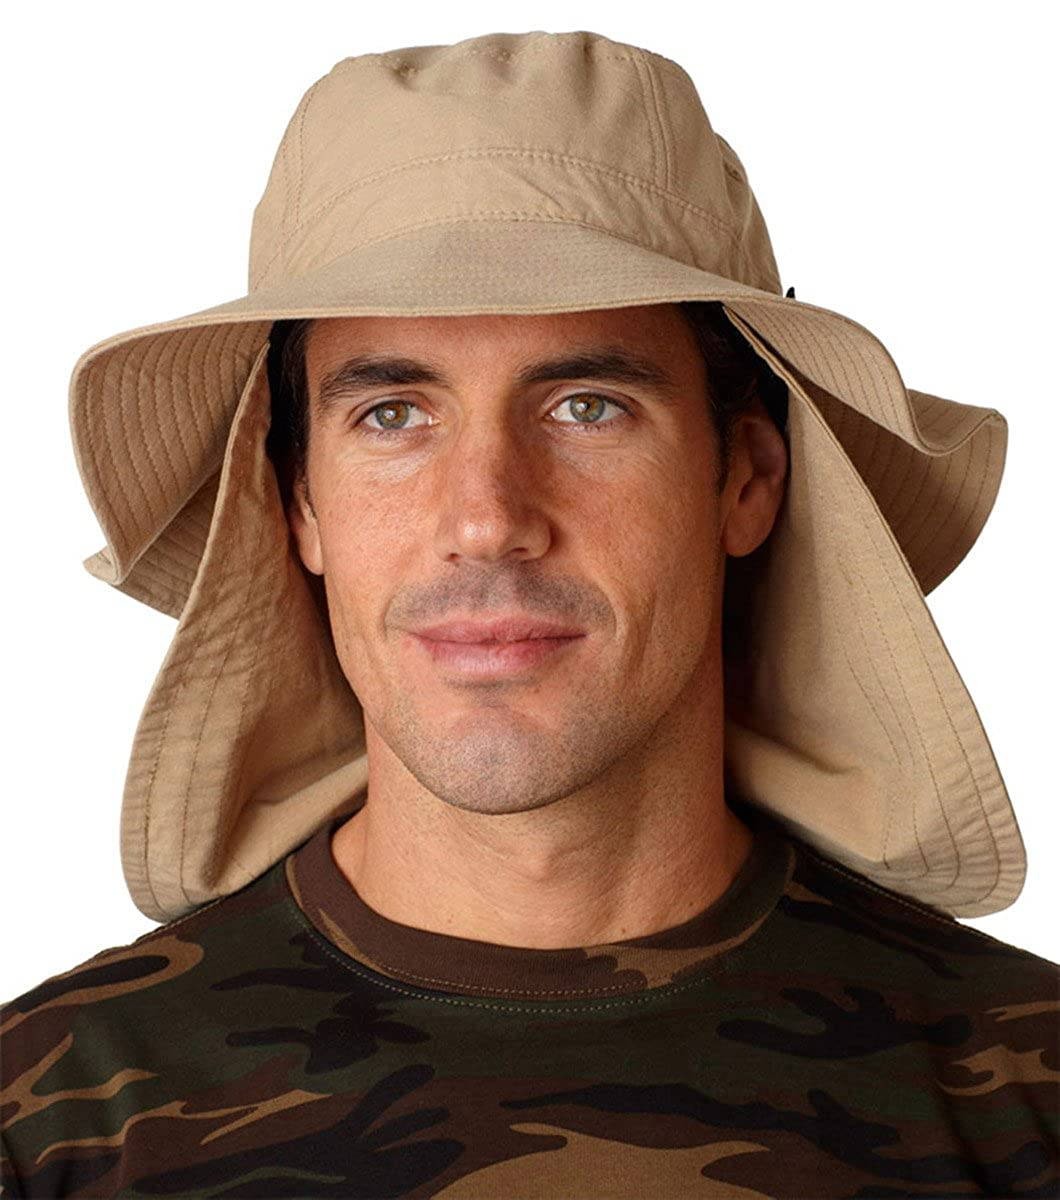 477579f96 Whispering Pines Sportwear UBM101 Extreme Vacationer Bucket Cap With Neck  Cape, Khaki, Large